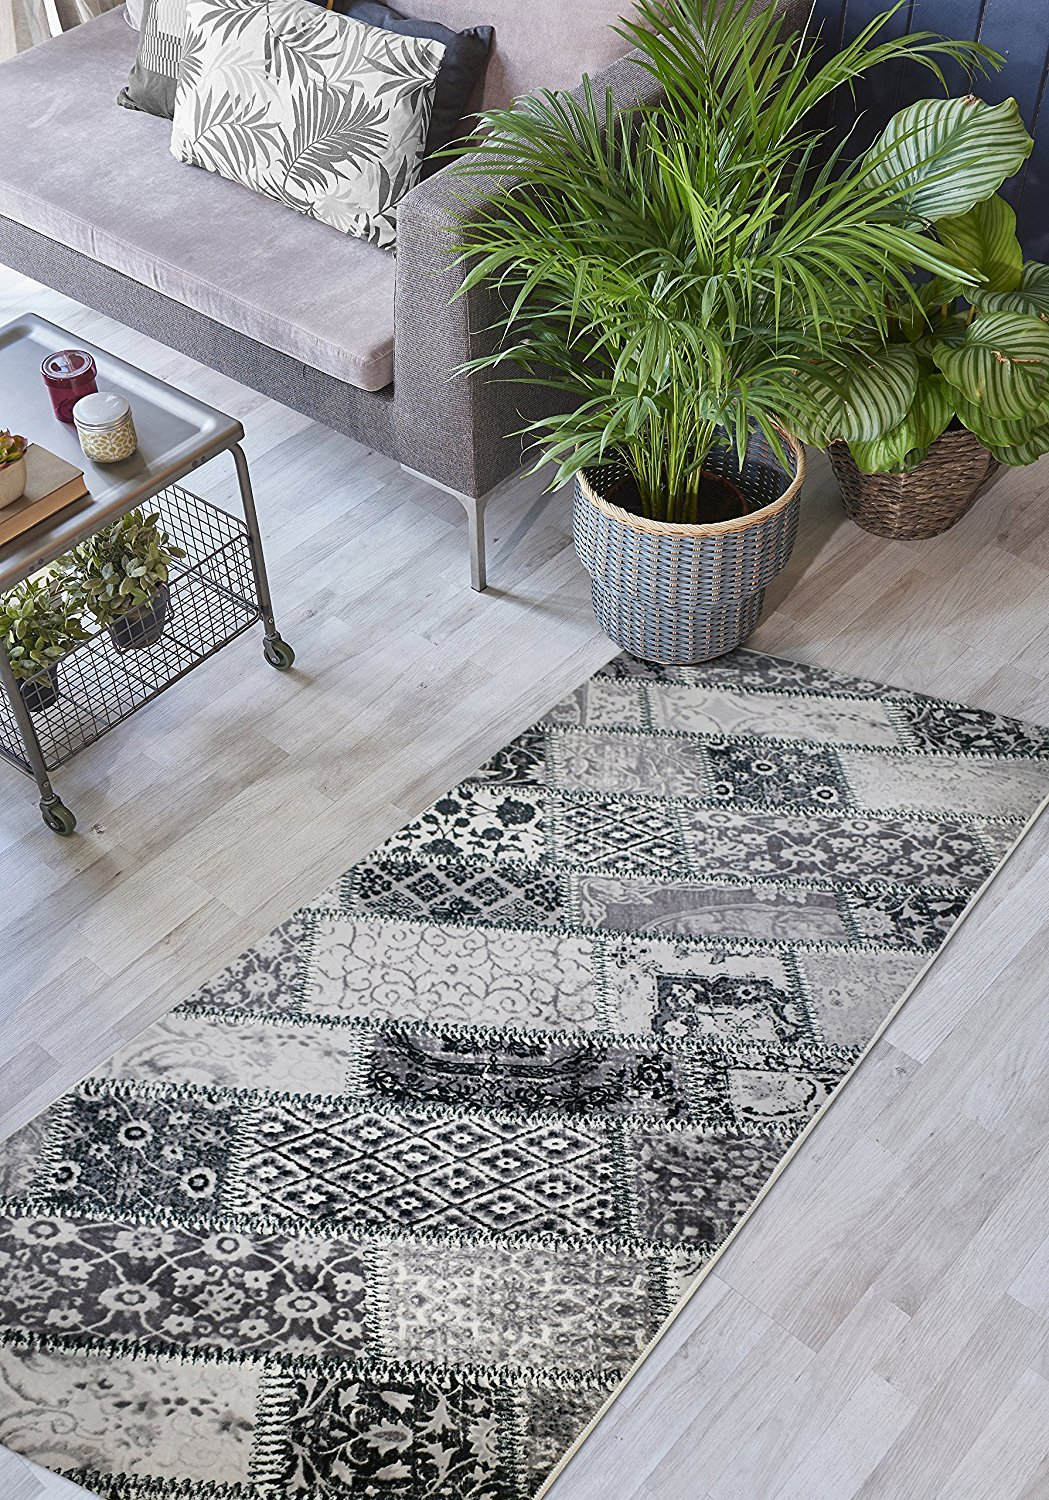 Custom Size Patchwork Hallway Runner Rug Non-Slip (Slip Resistant) Rubber Back, 31 Inch Wide x Your Choice of Length Size Many Color Options, Amber Collection, Black, 31 inch X 5 feet